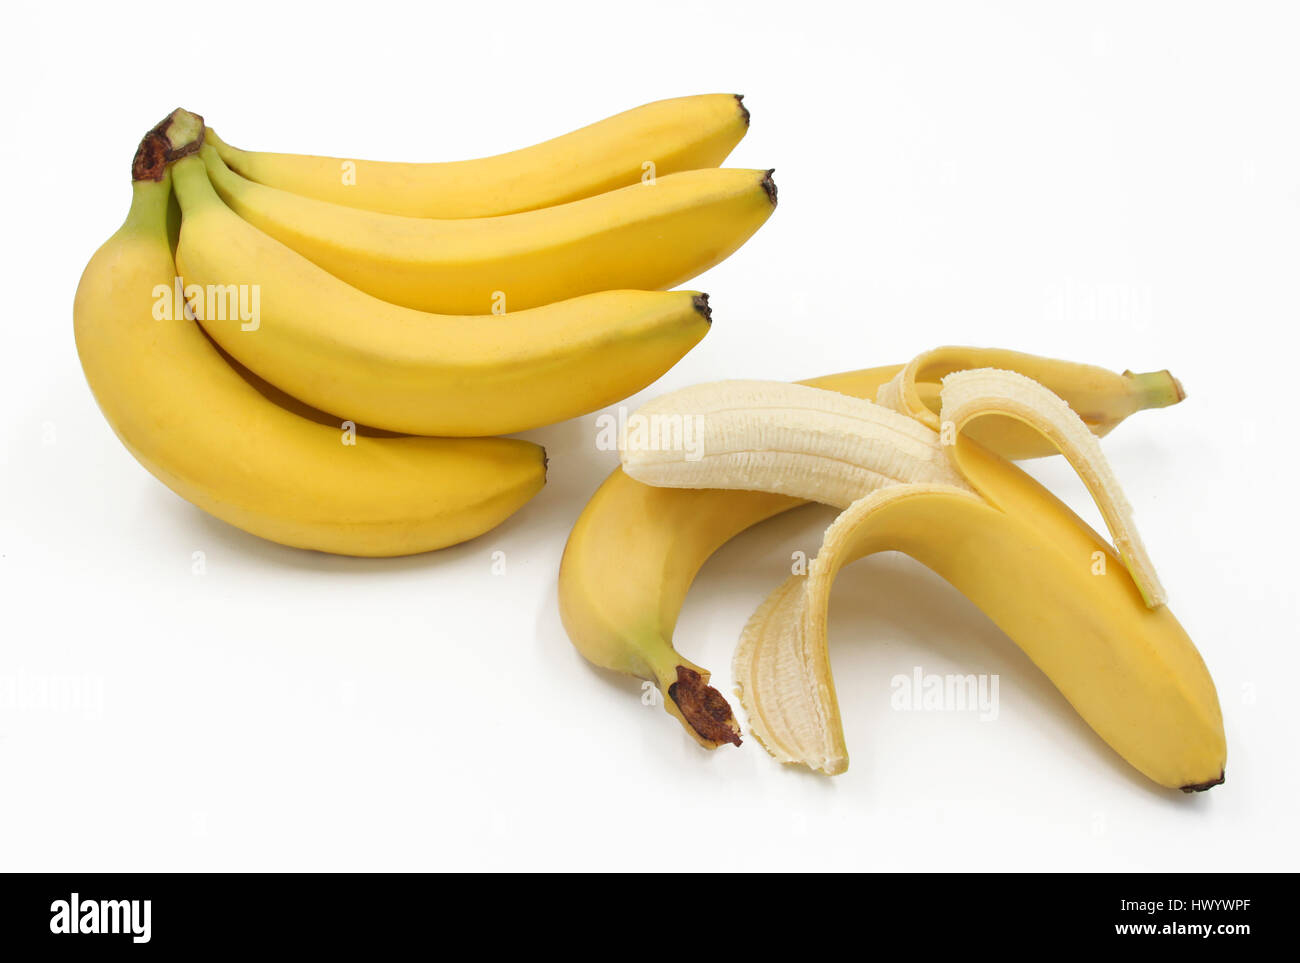 Bunch of ripe bananas - Banana peeled and unpeeled - spotless flawless - Background isolated white Stock Photo